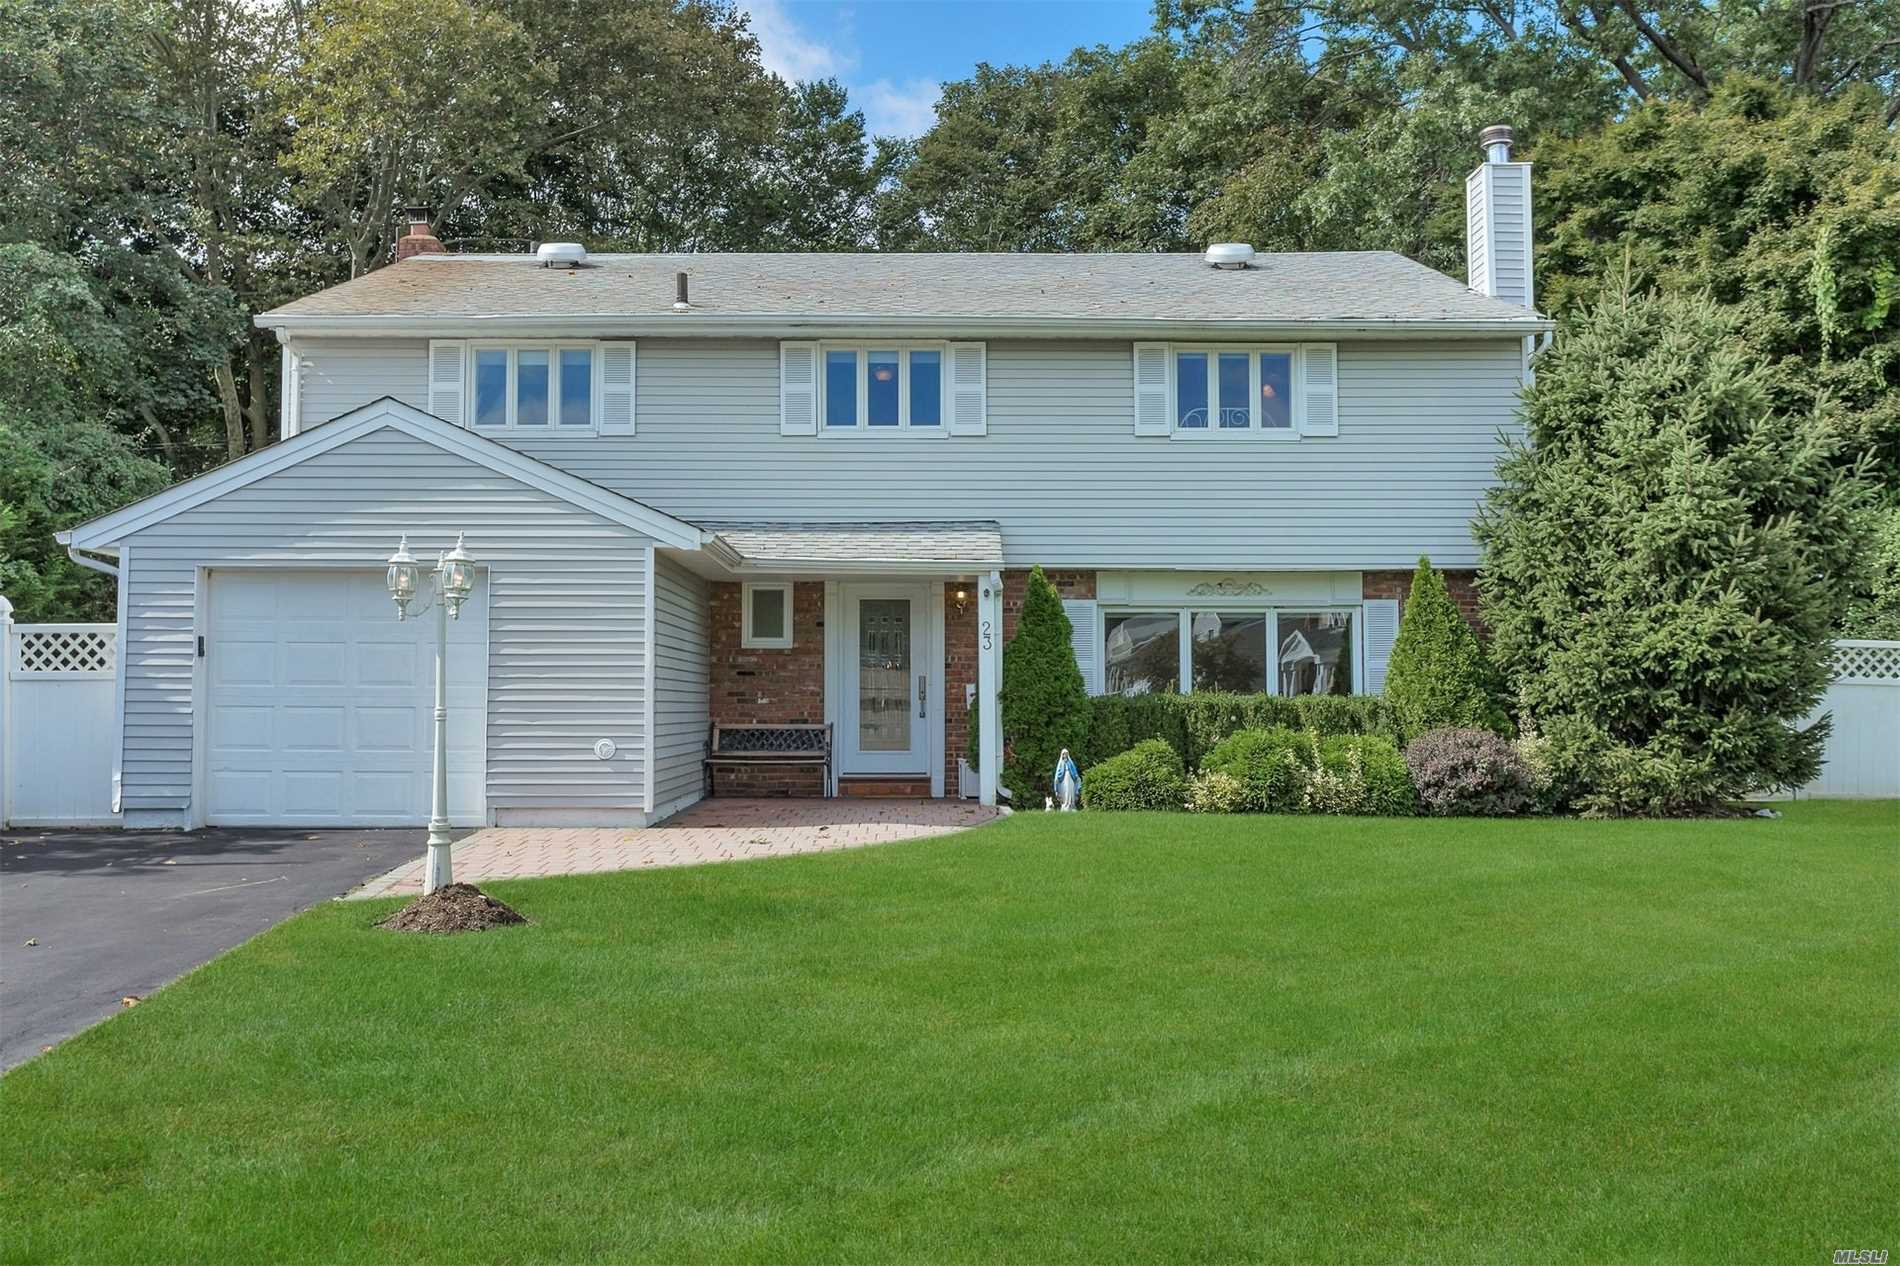 Photo of home for sale at 23 Barry Dr, Glen Cove NY